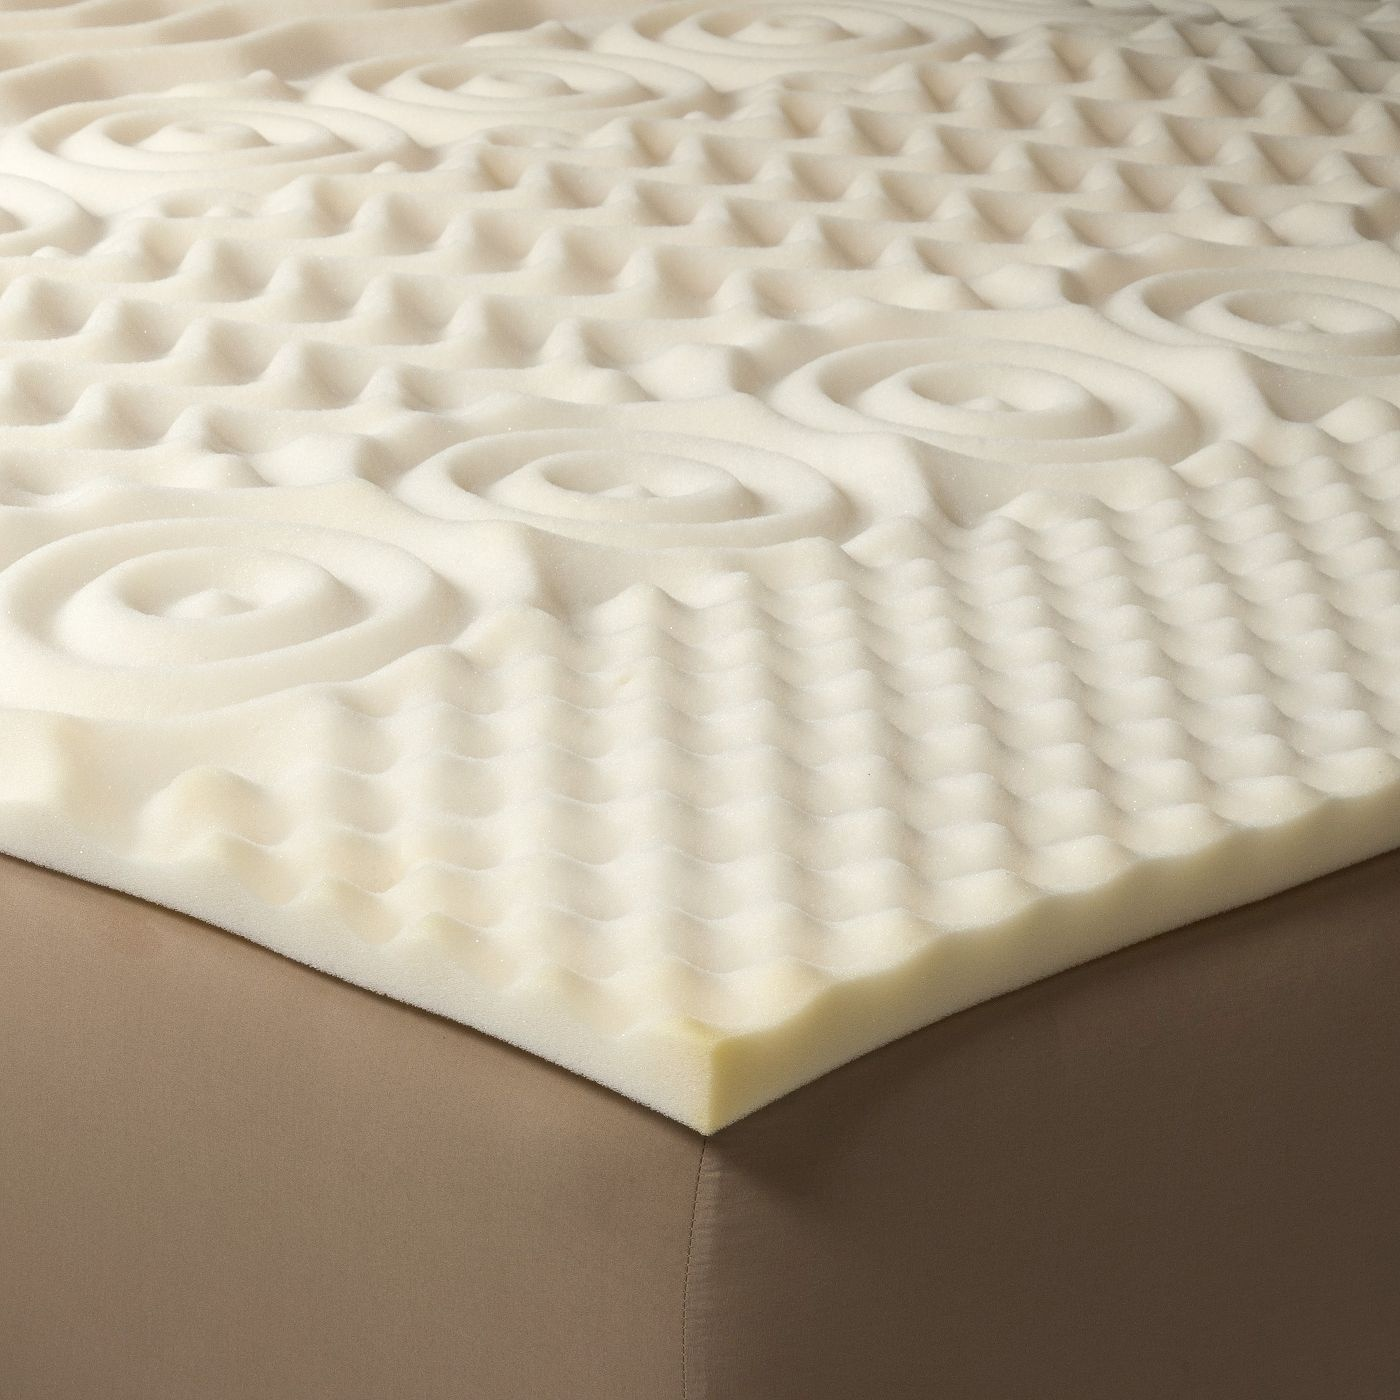 Comfy Foam Hotel Massage Gel Memory Foam Mattress Topper - Jozy Mattress | Jozy.net